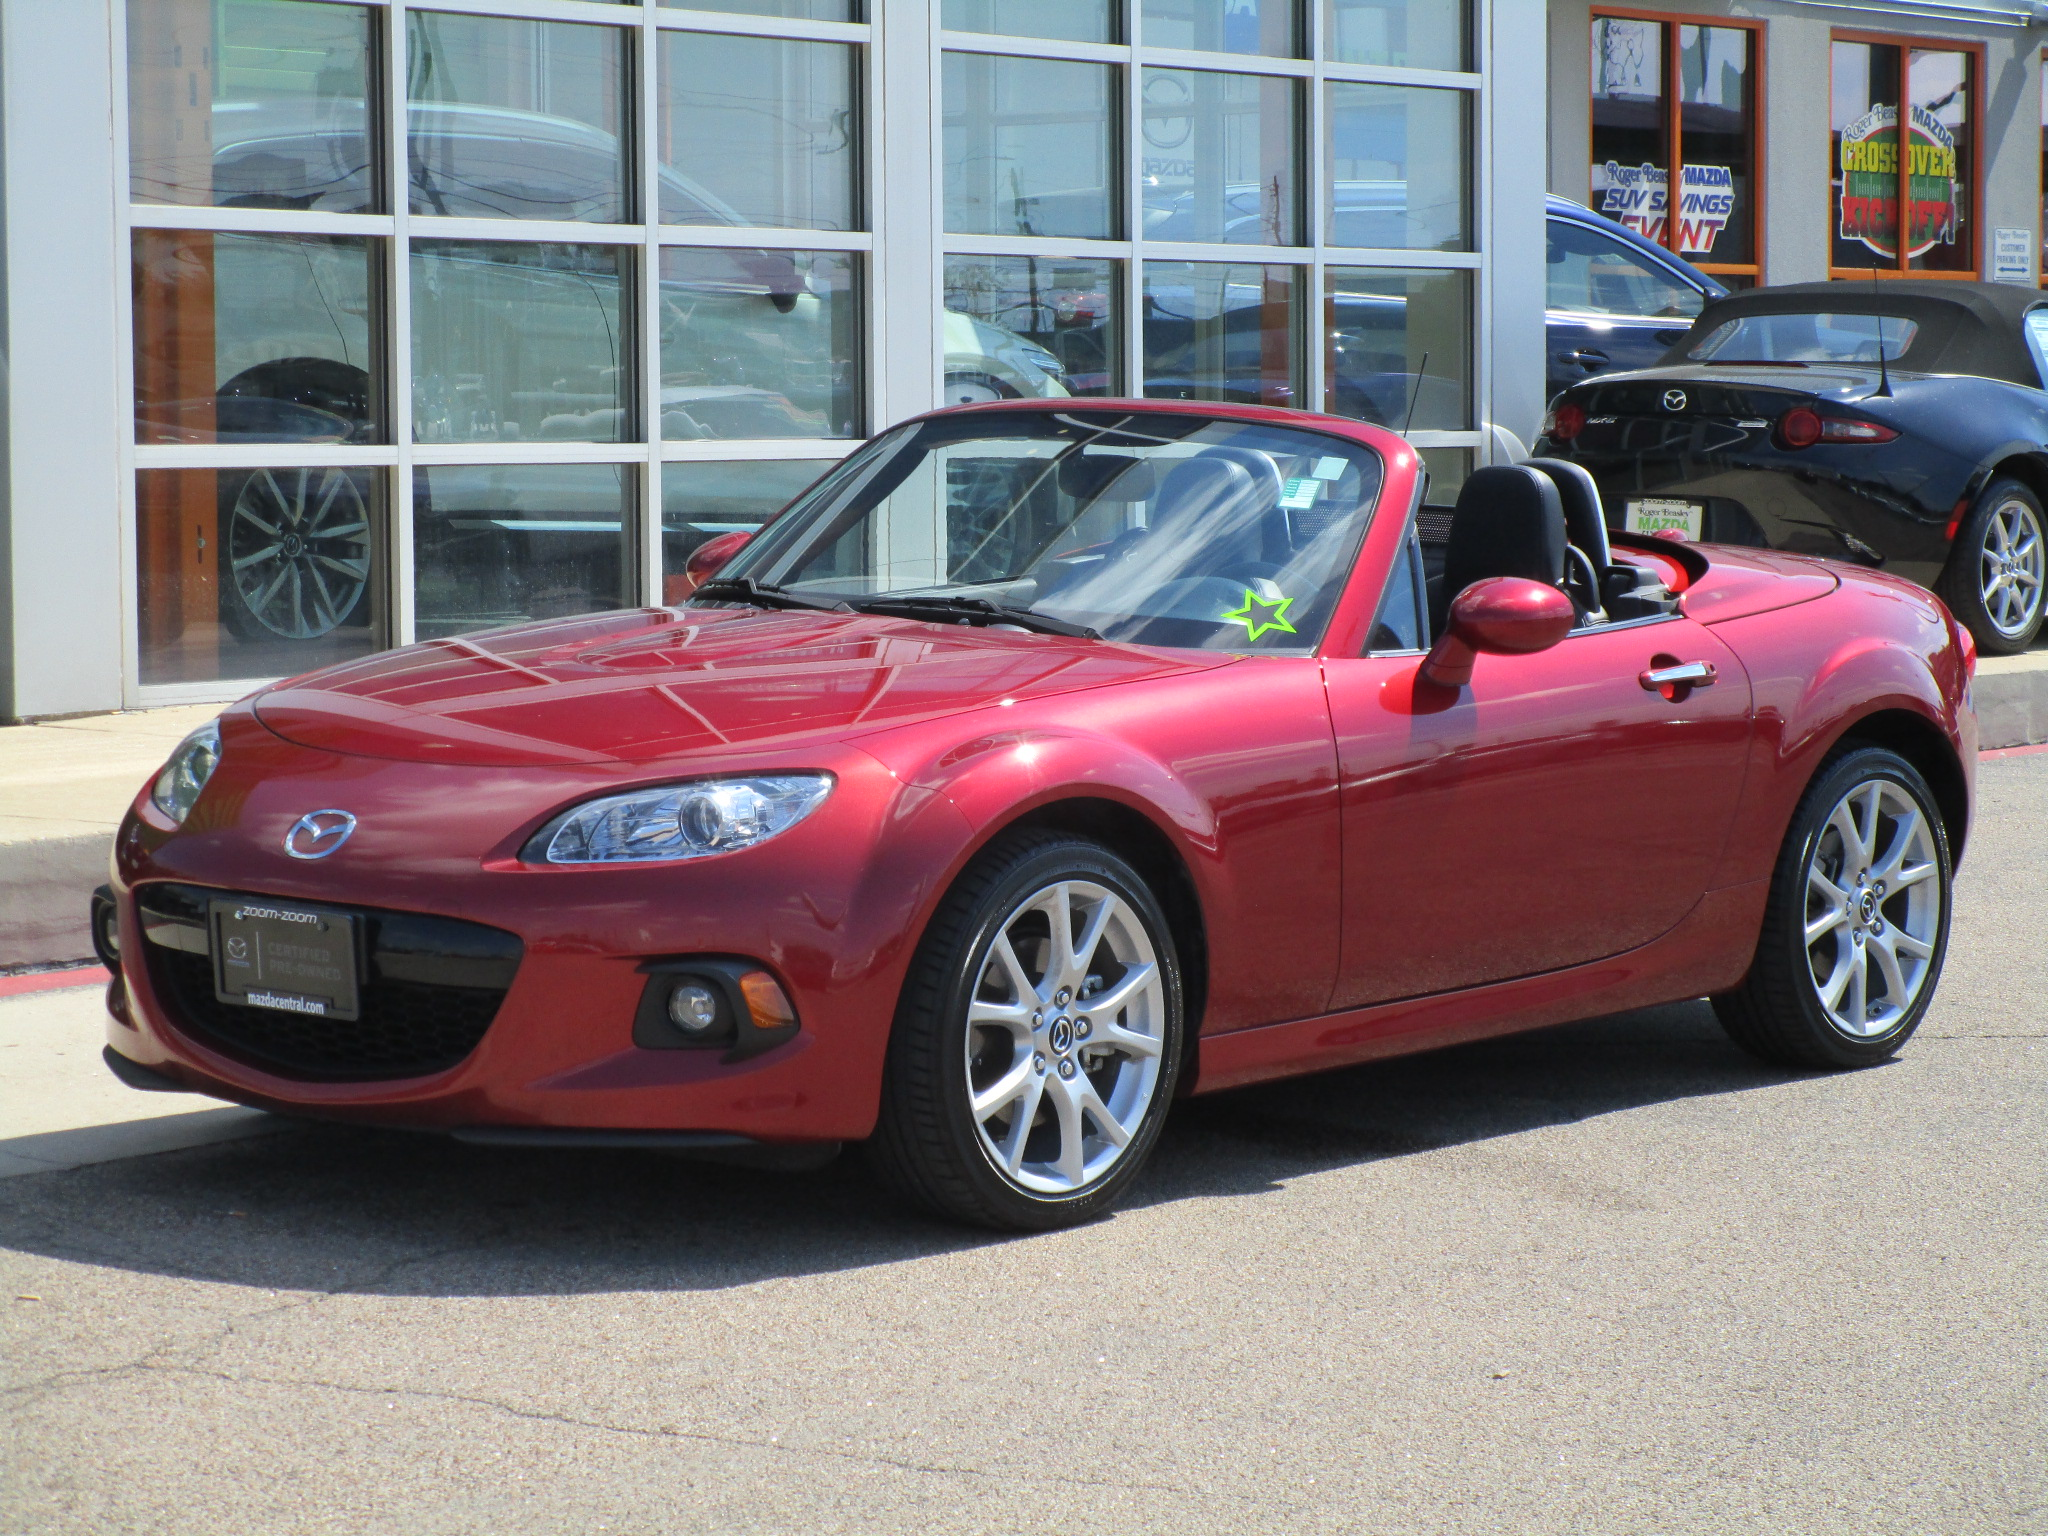 used mazda mx 5 miata for sale in austin tx the car connection. Black Bedroom Furniture Sets. Home Design Ideas